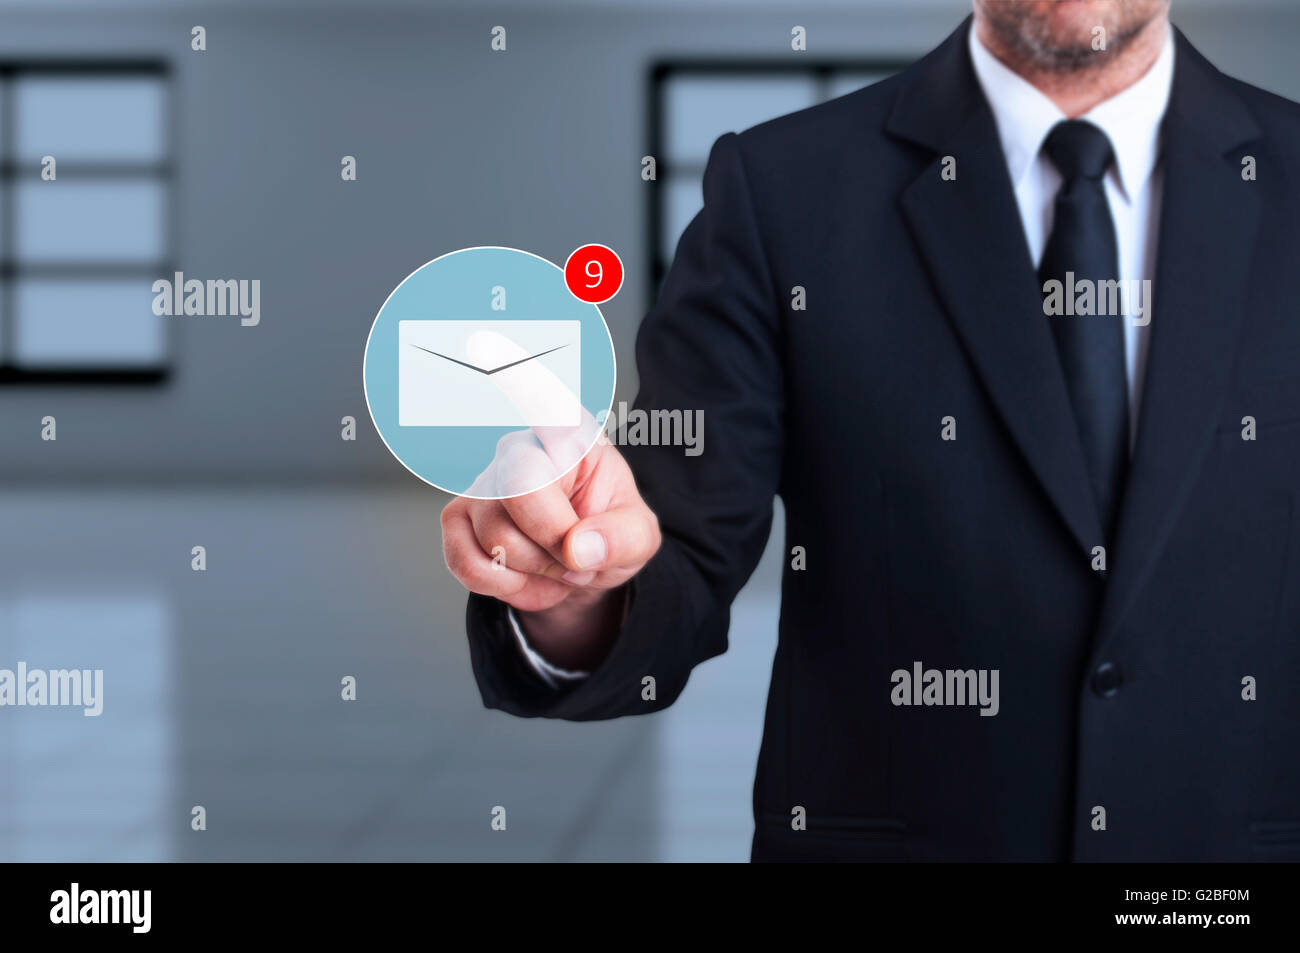 Digital inbox with received new messages concept as futuristic worldwide business comunications - Stock Image